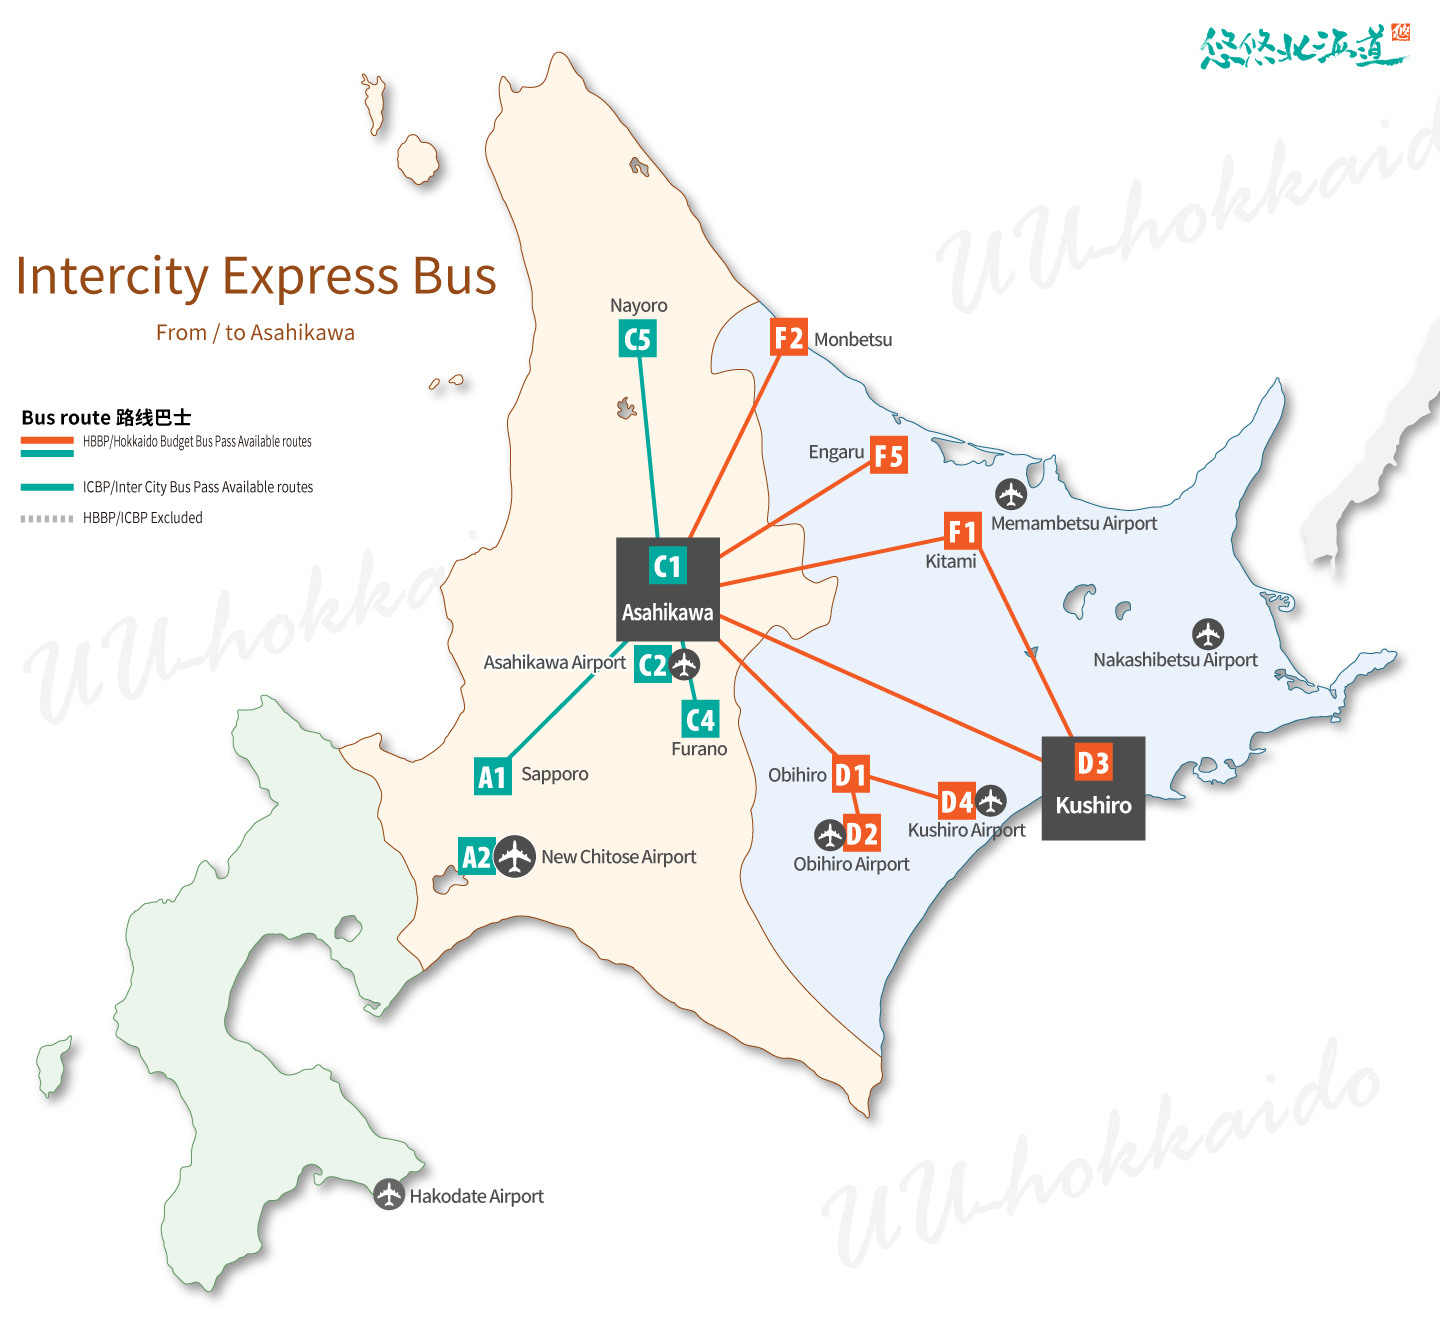 Intercity Express Bus